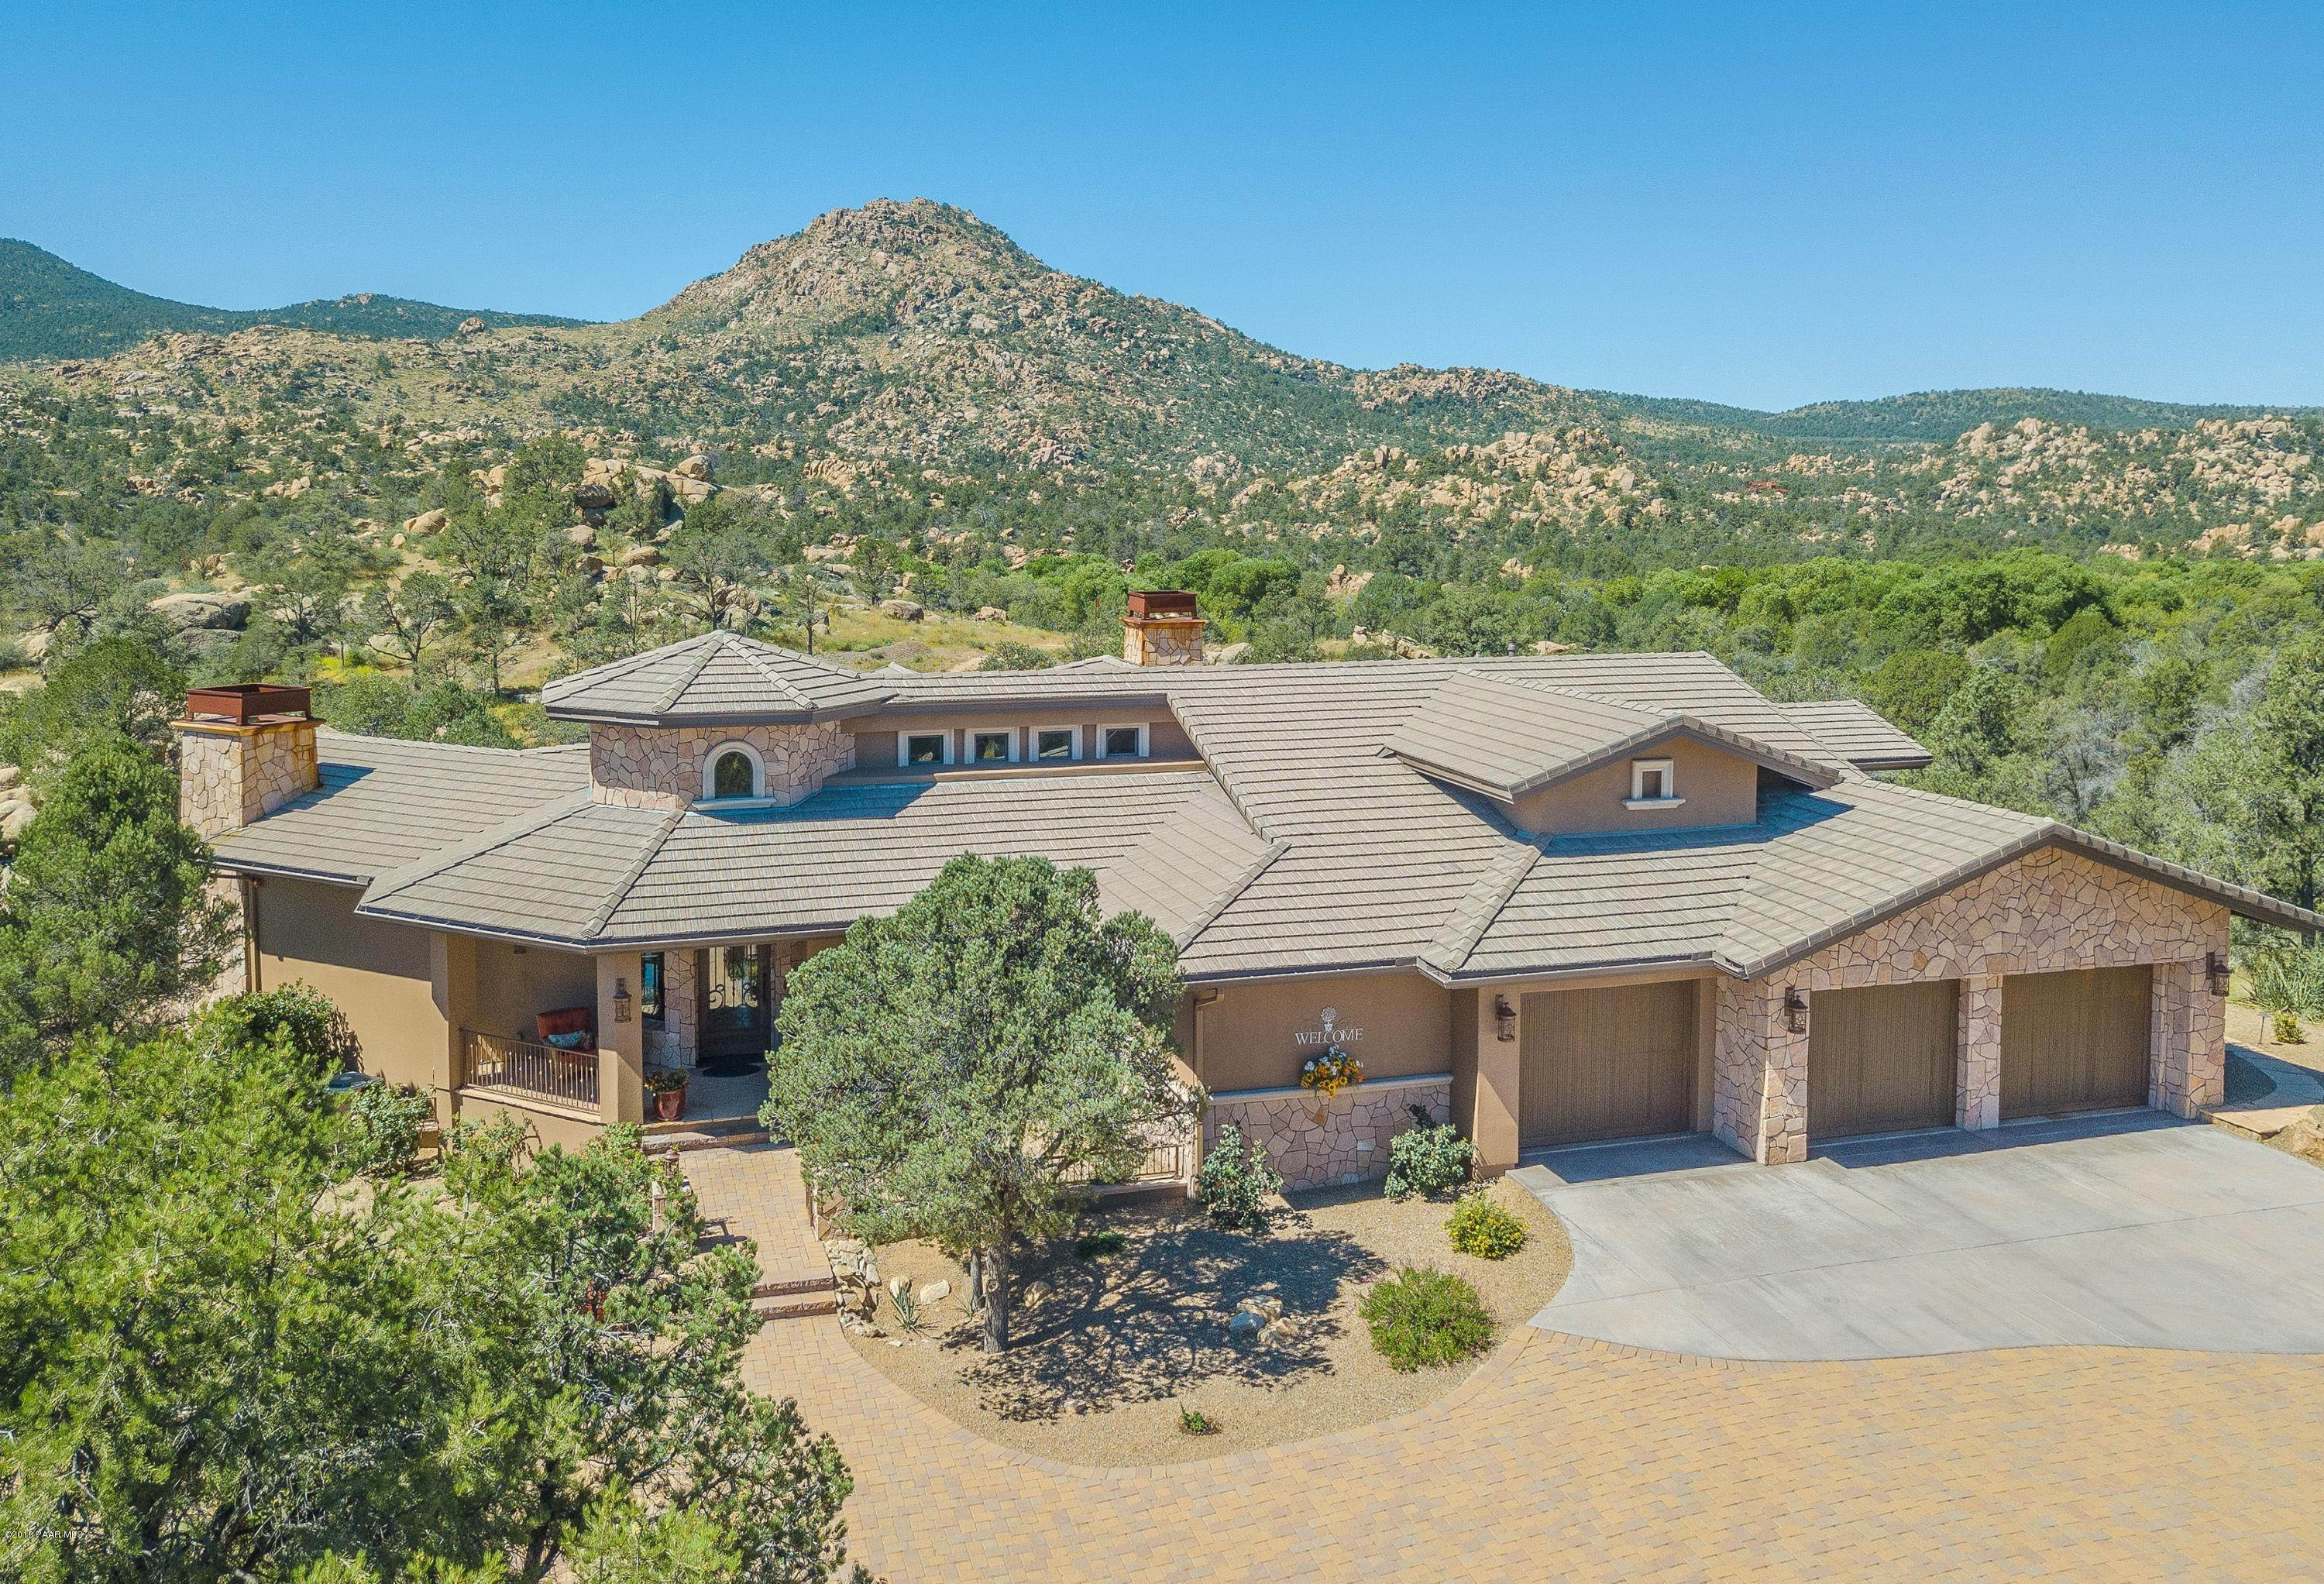 Photo of 4680 Distant View, Prescott, AZ 86305